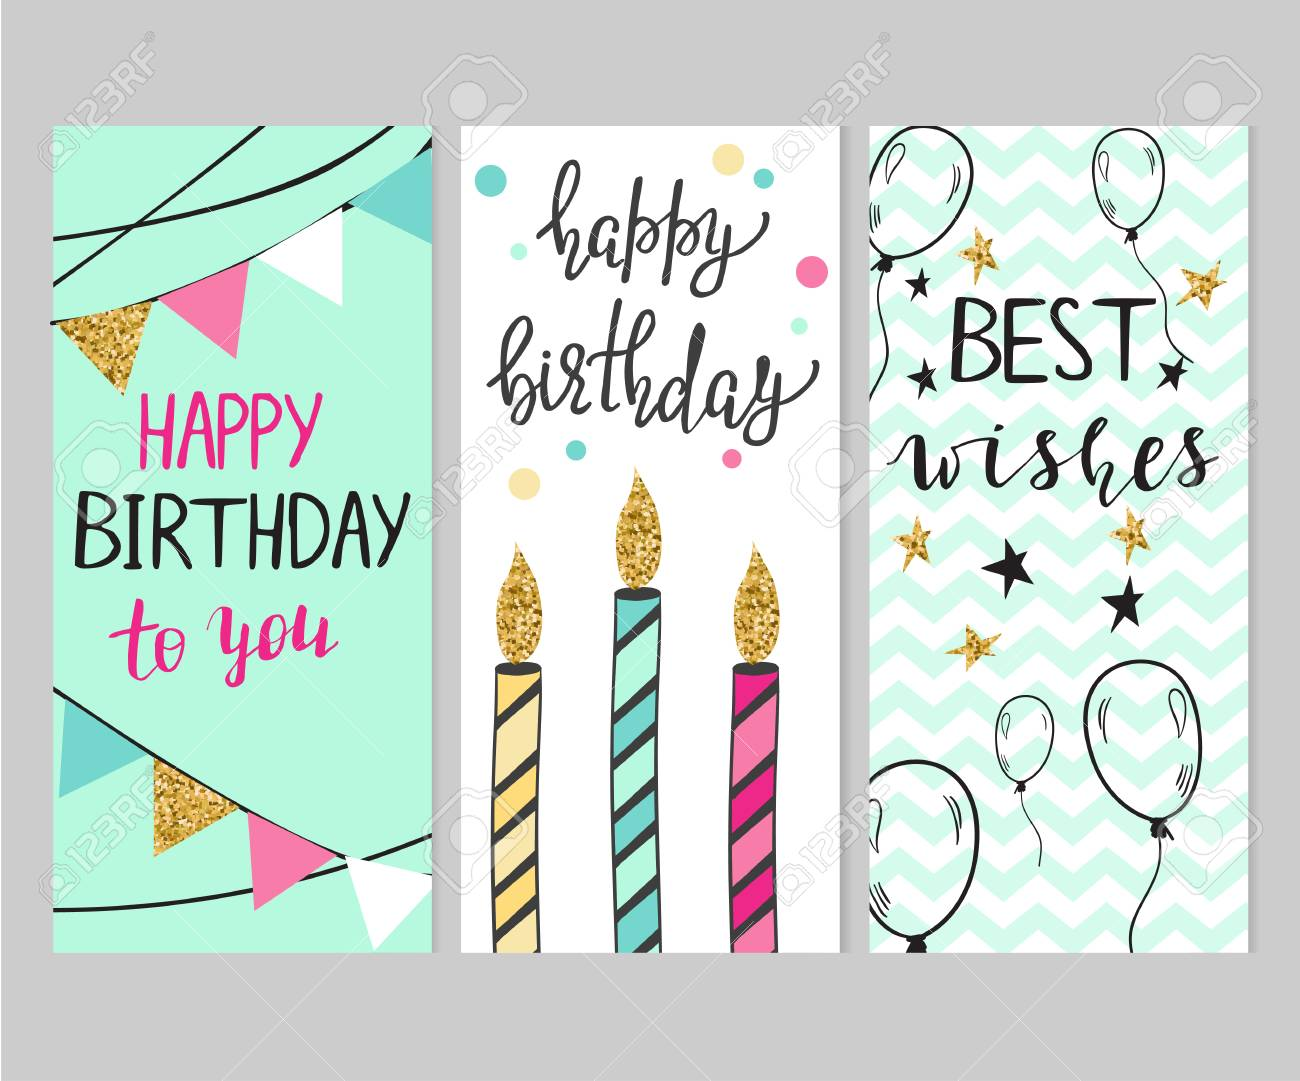 Set Of Bright Birthday Cards With Glitter Elements And Lettering Stock Vector